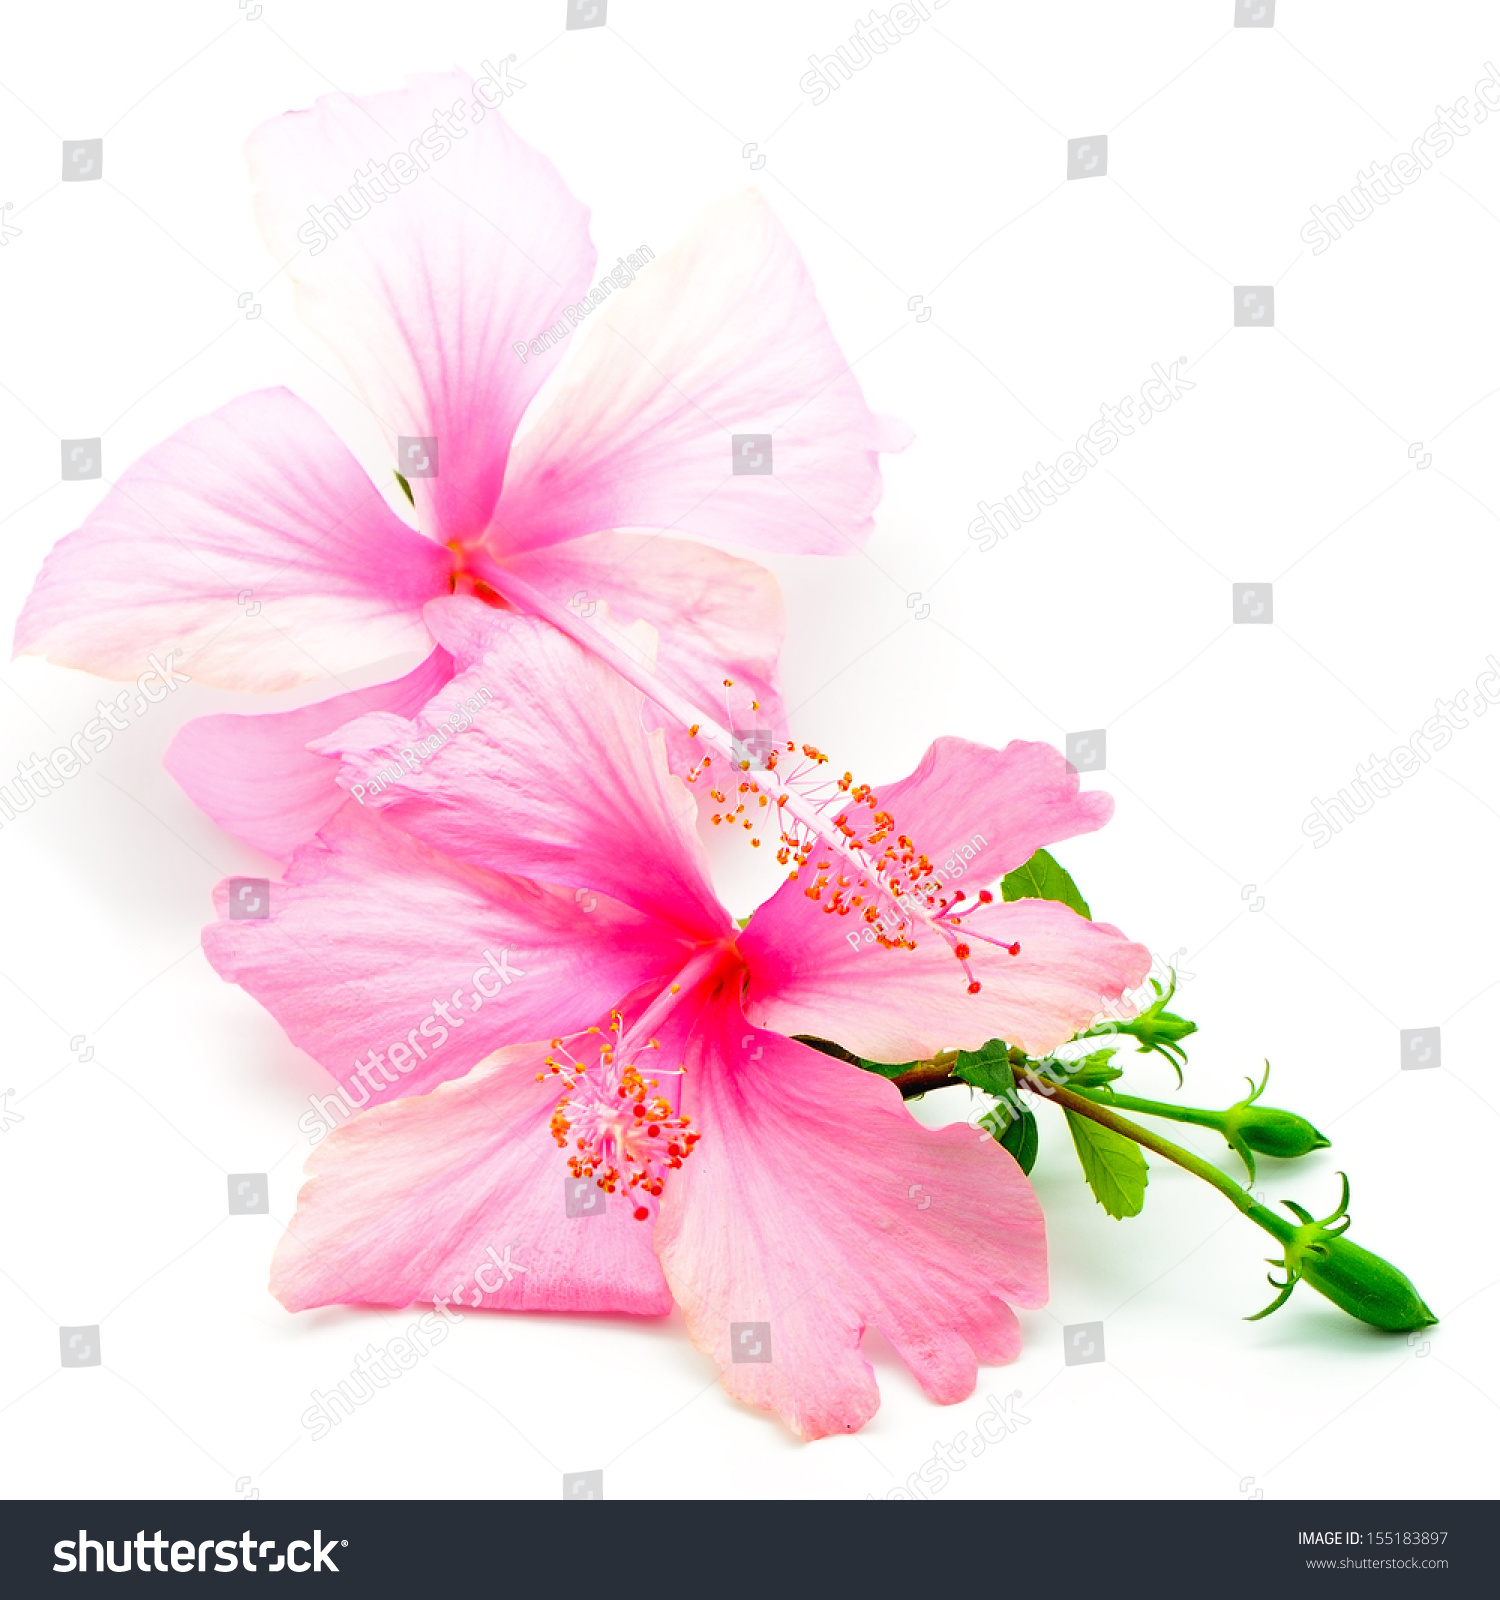 Colorful Pink Hibiscus Flower Isolated On A White Background Ez Canvas